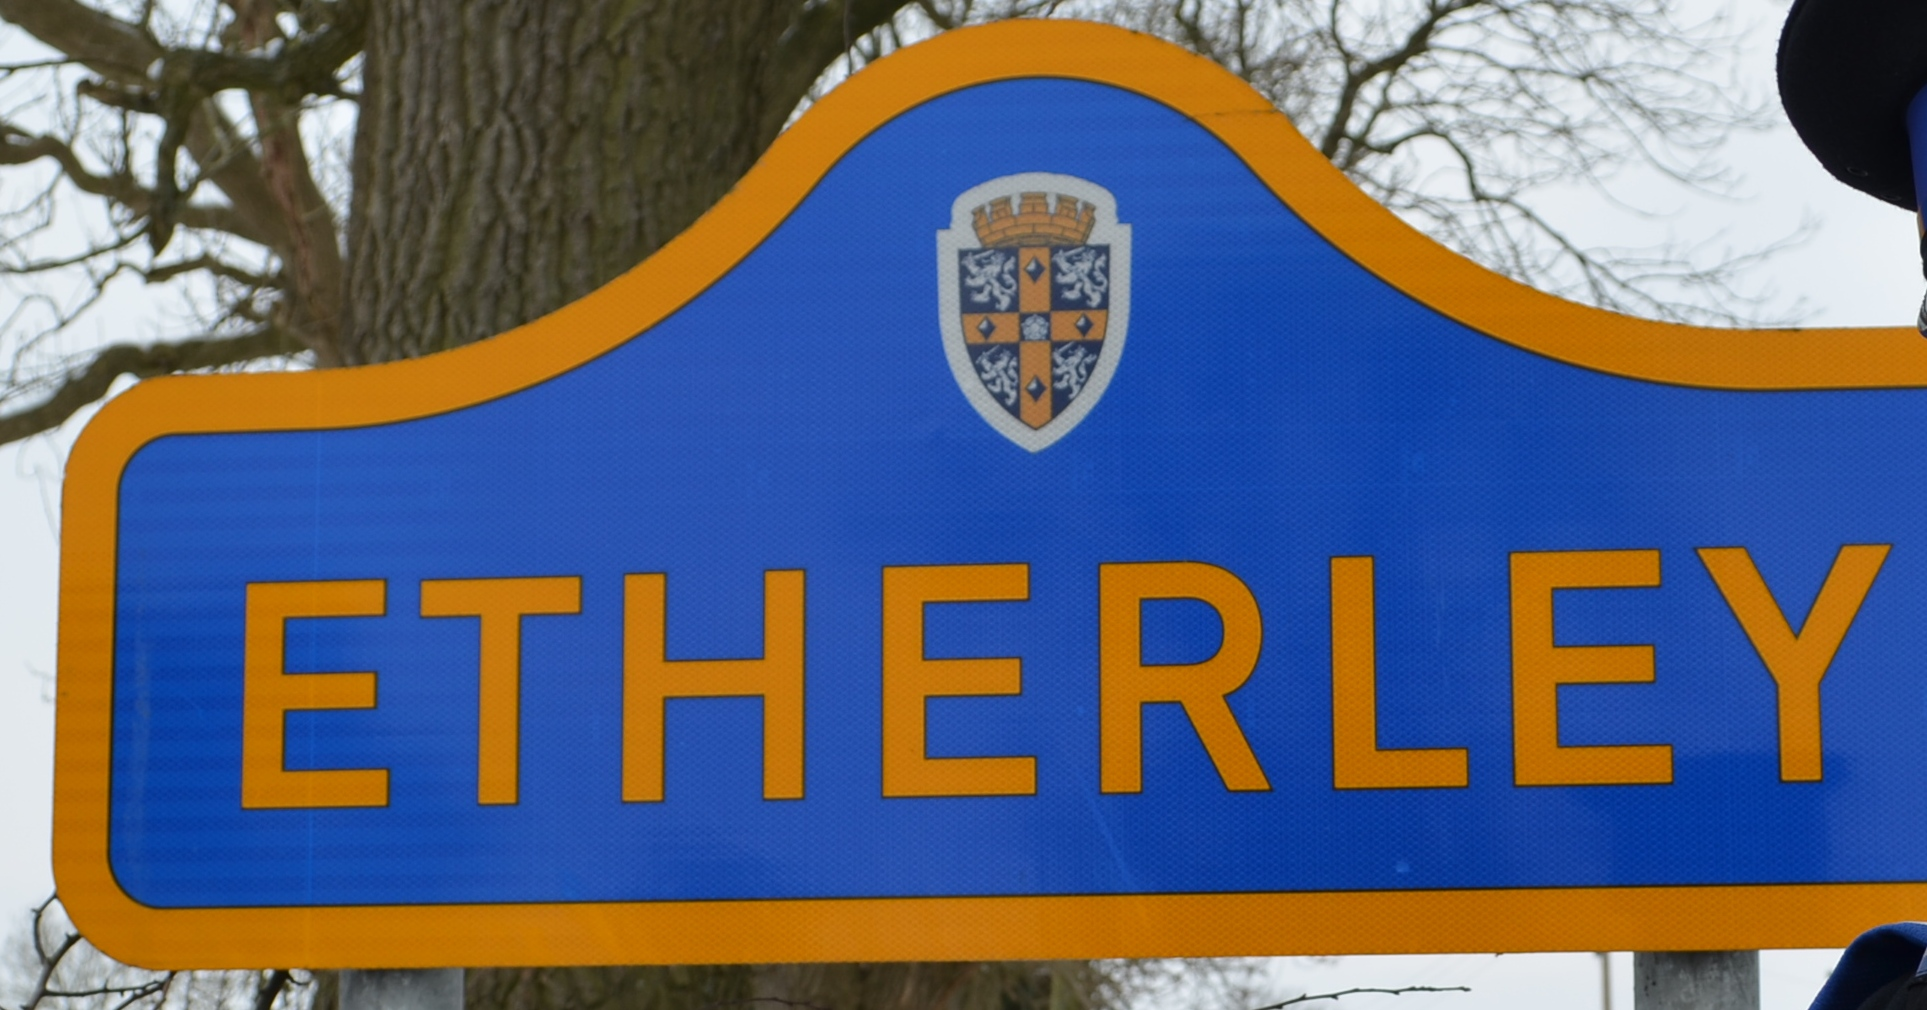 Etherley Parish Council chairman under fire over leaflet